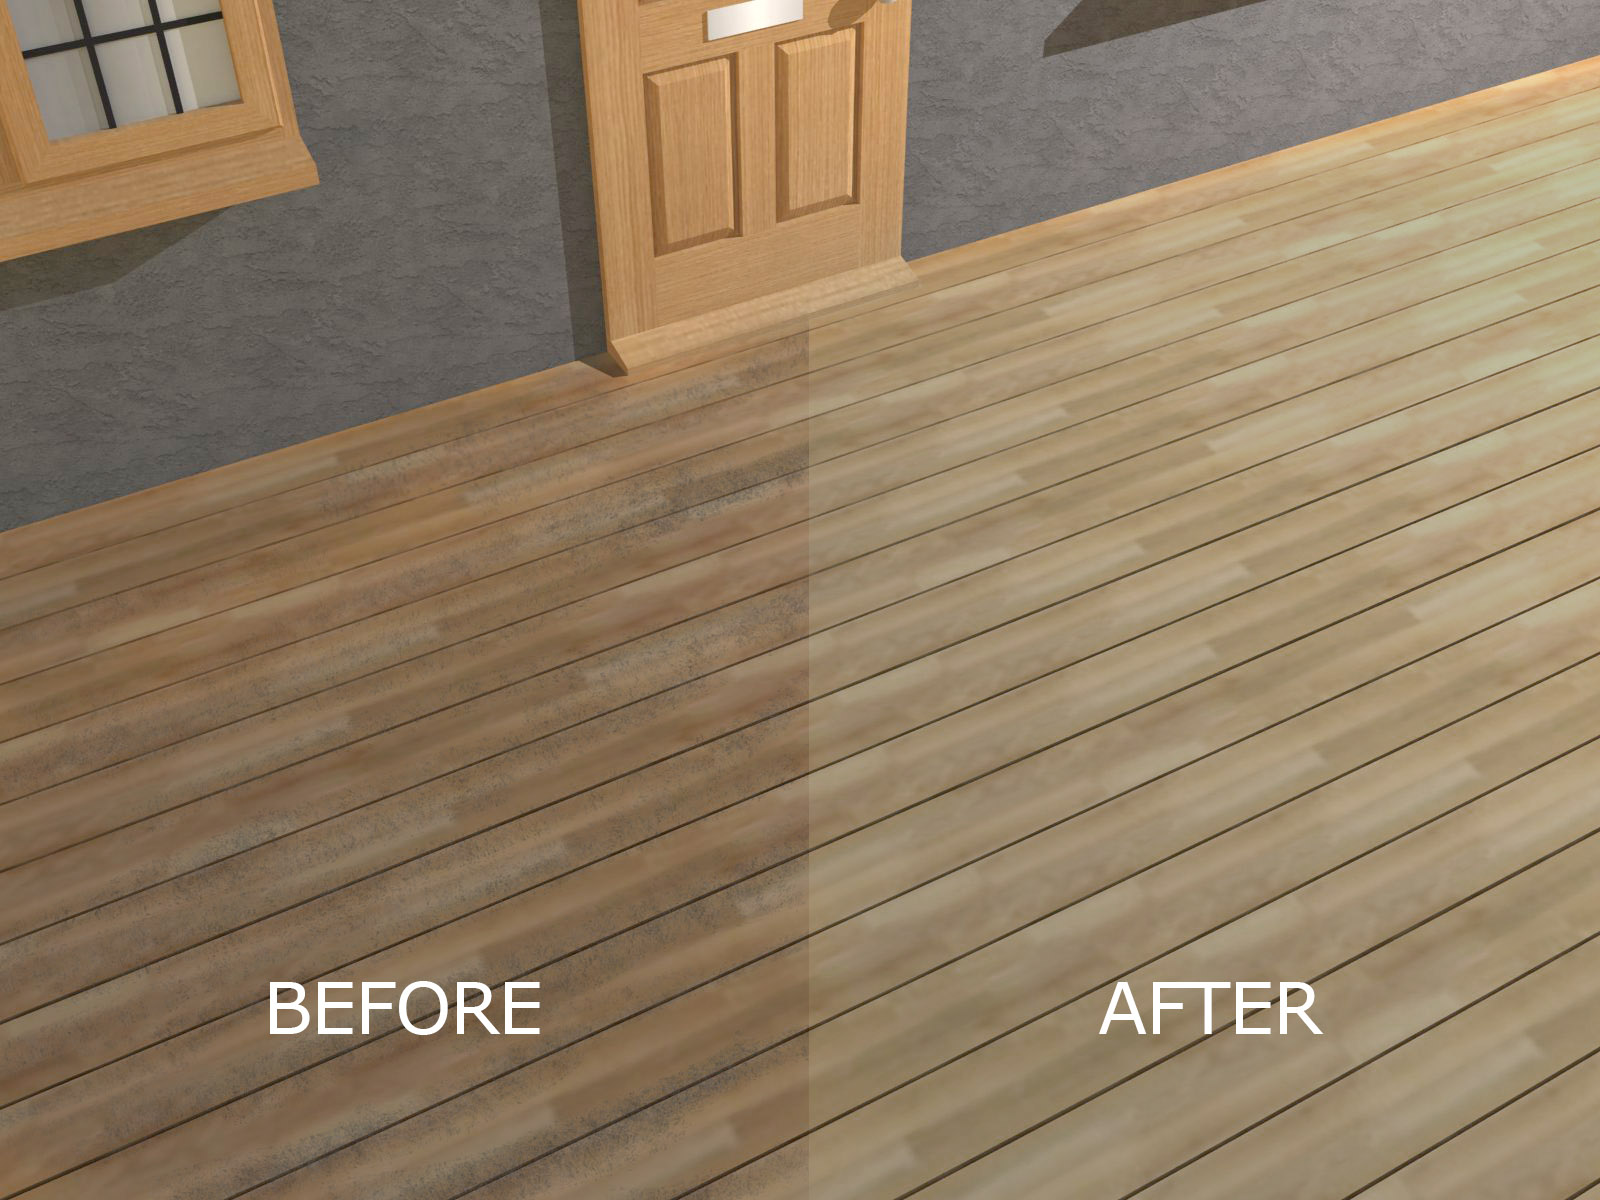 How To Seal And Stain Pressure Treated Wood Decking 4 Steps